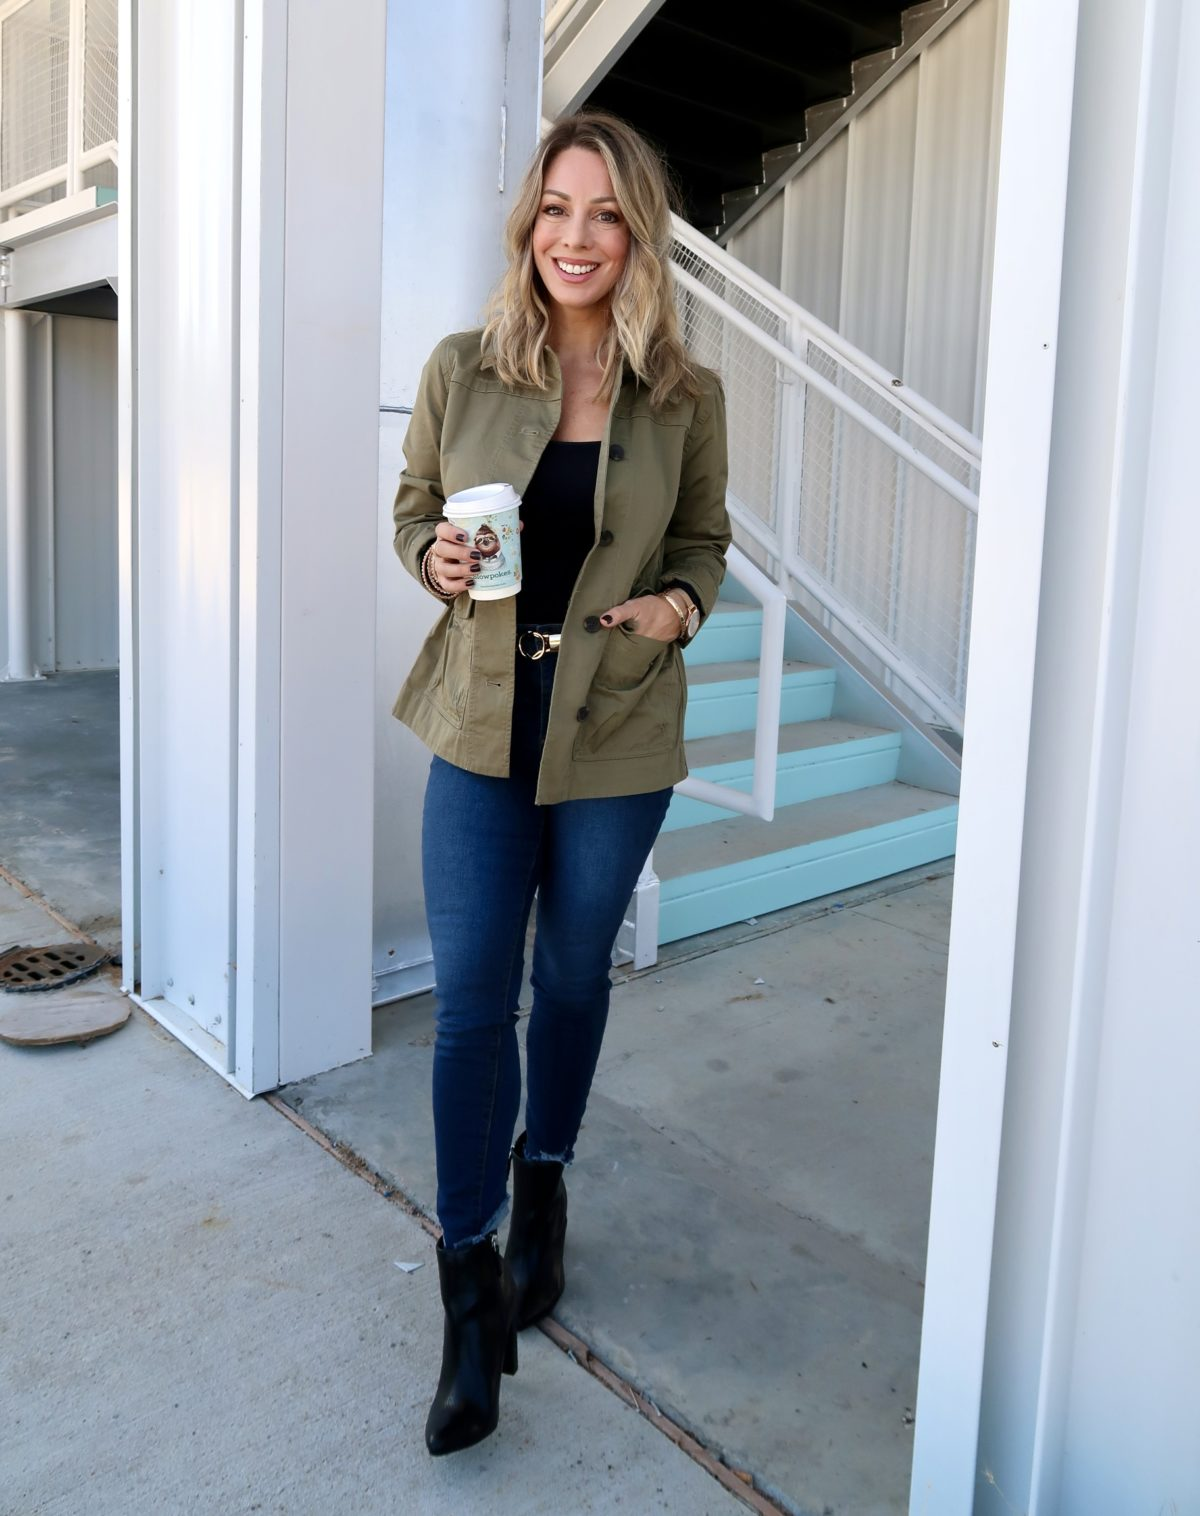 Walmart Fashion Finds, Bodysuit, Military Jacket, Jeans, Booties